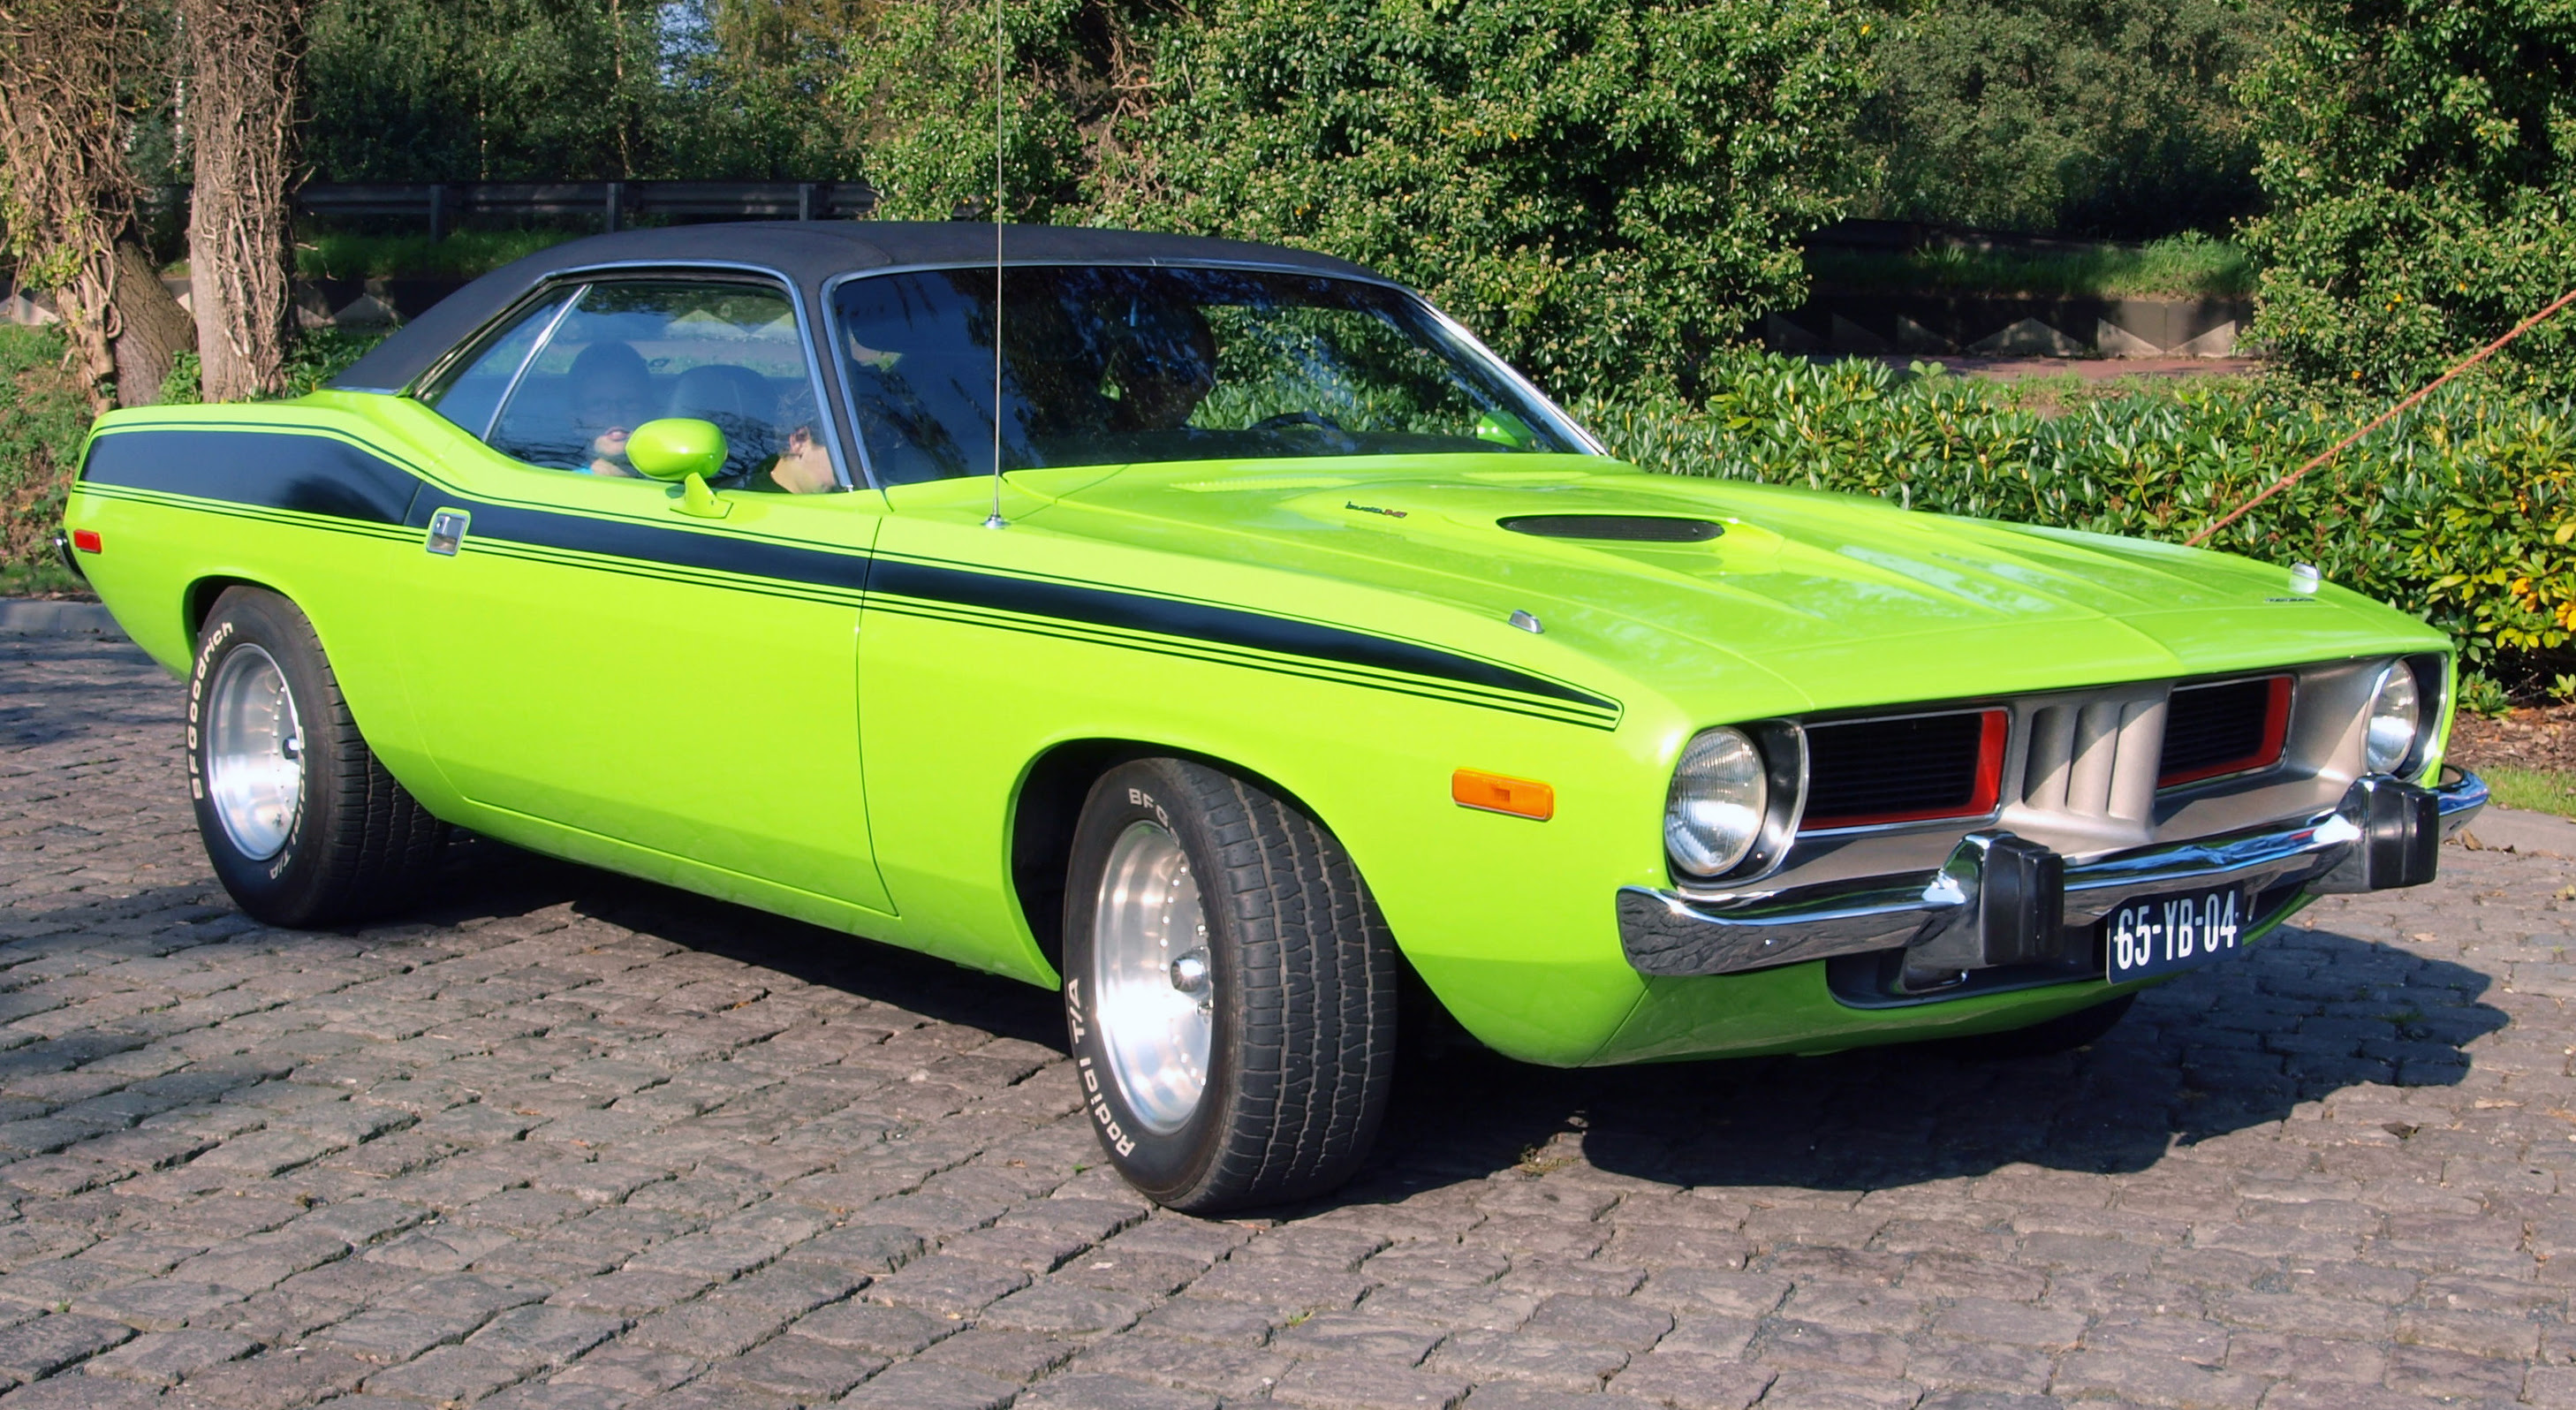 1969 Ford Fairlane Gt Pics And Info Muscars Com